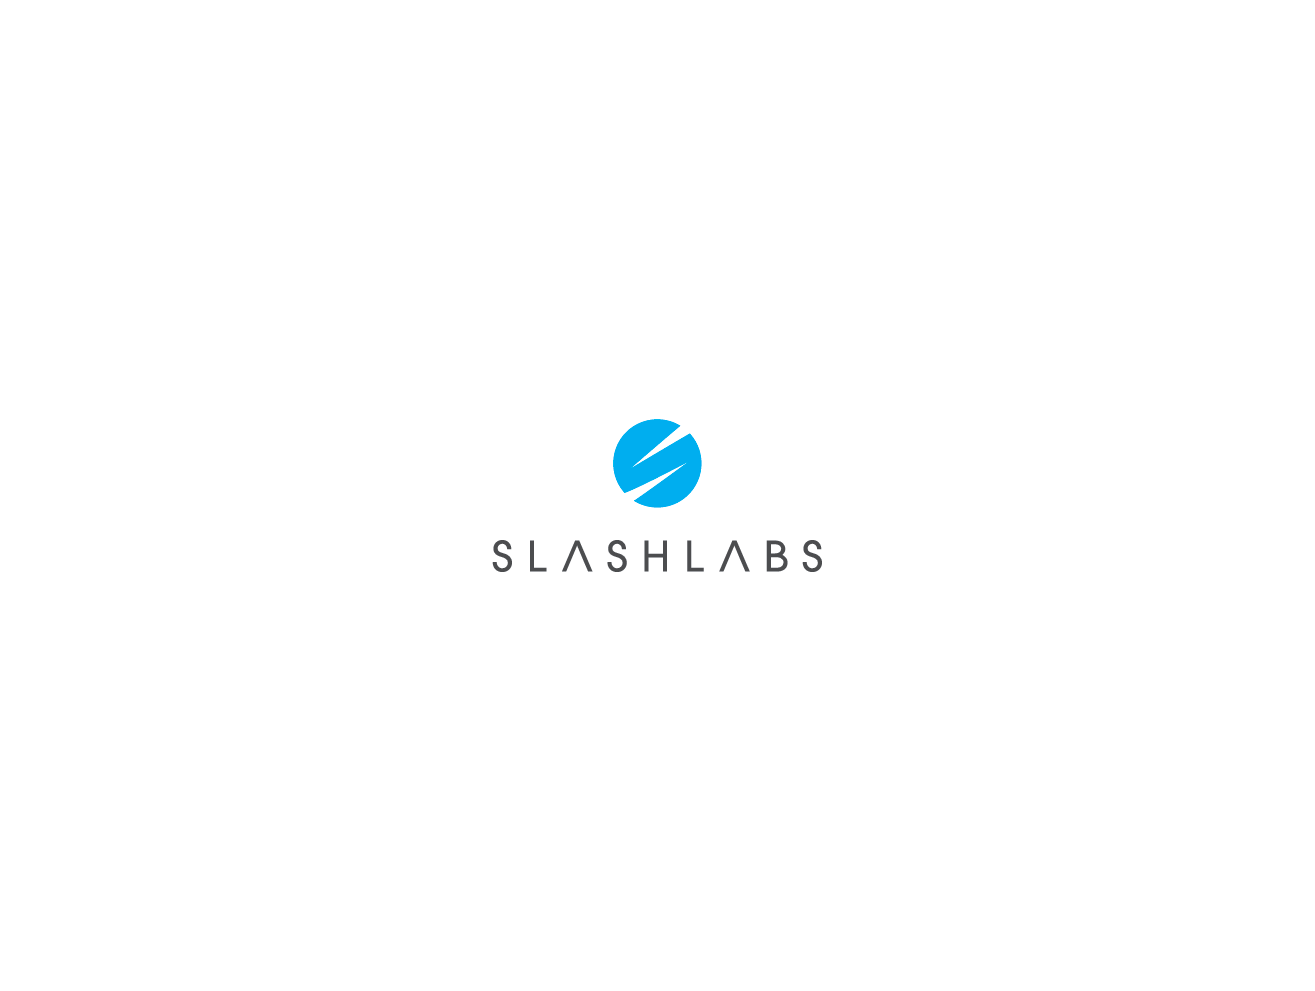 New logo wanted for SLASHLABS